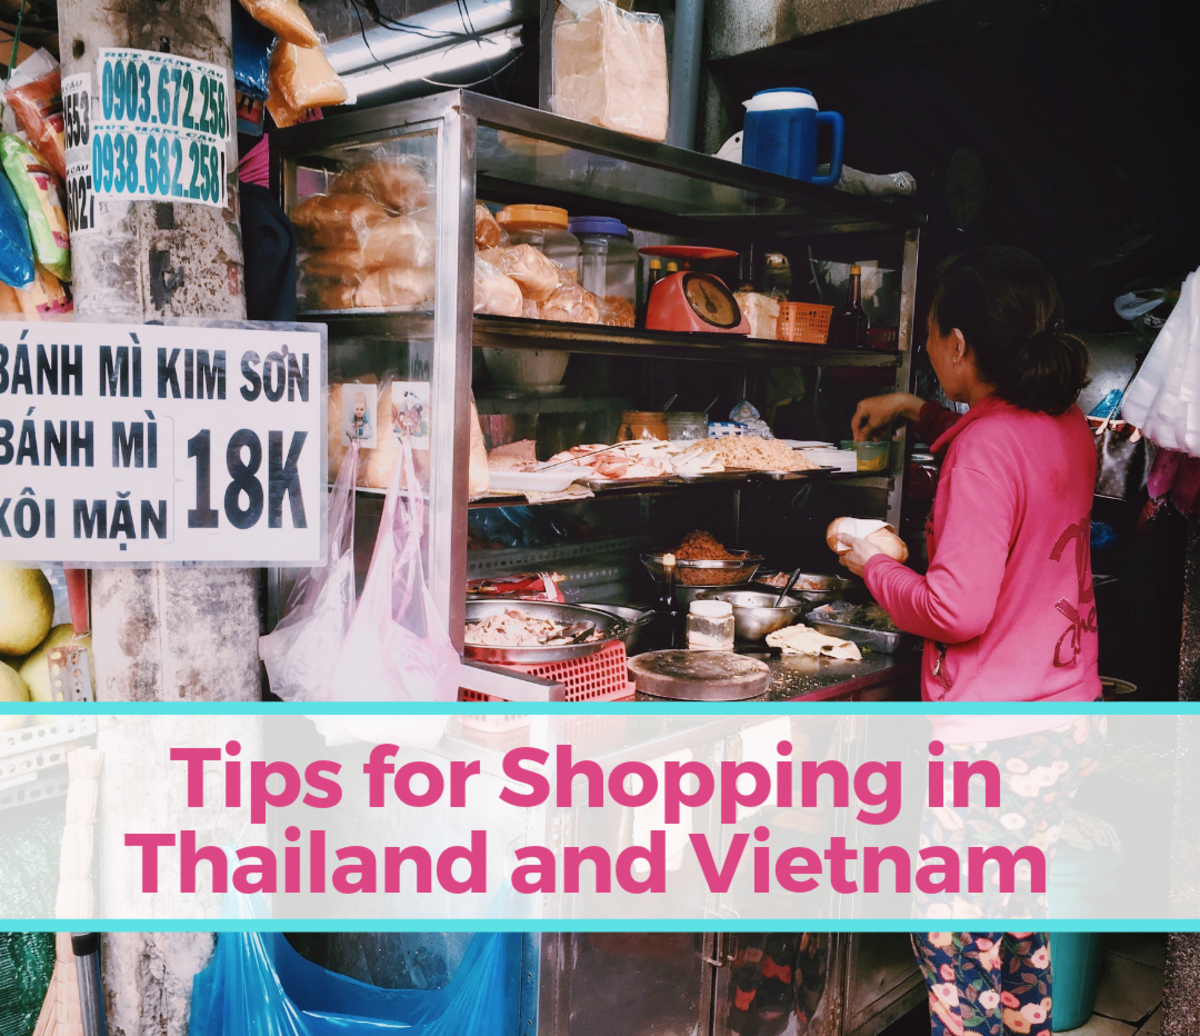 Learn where to go and how to get the best deals while shopping in Thailand and Vietnam.